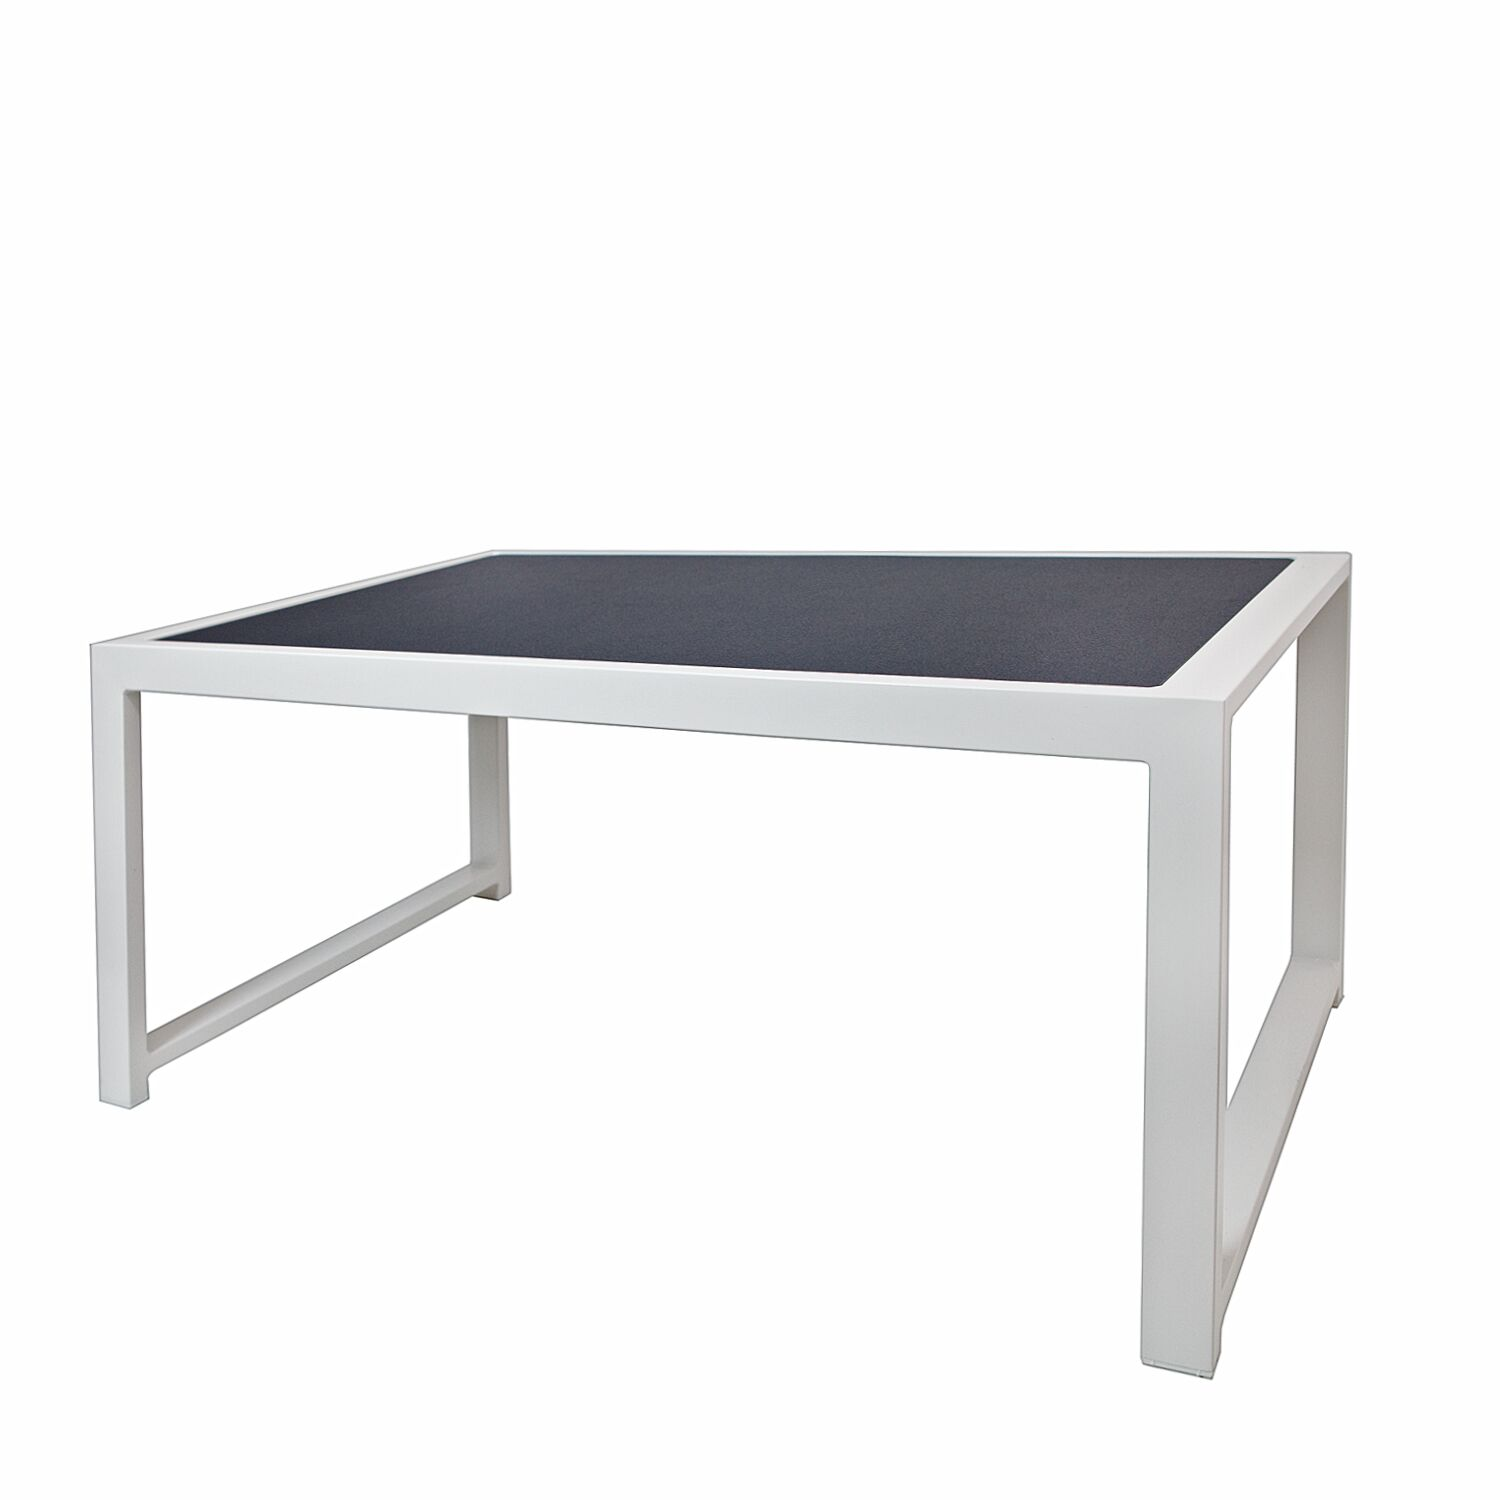 Jug Coffee Table Frame Color: White, Top Color: Black